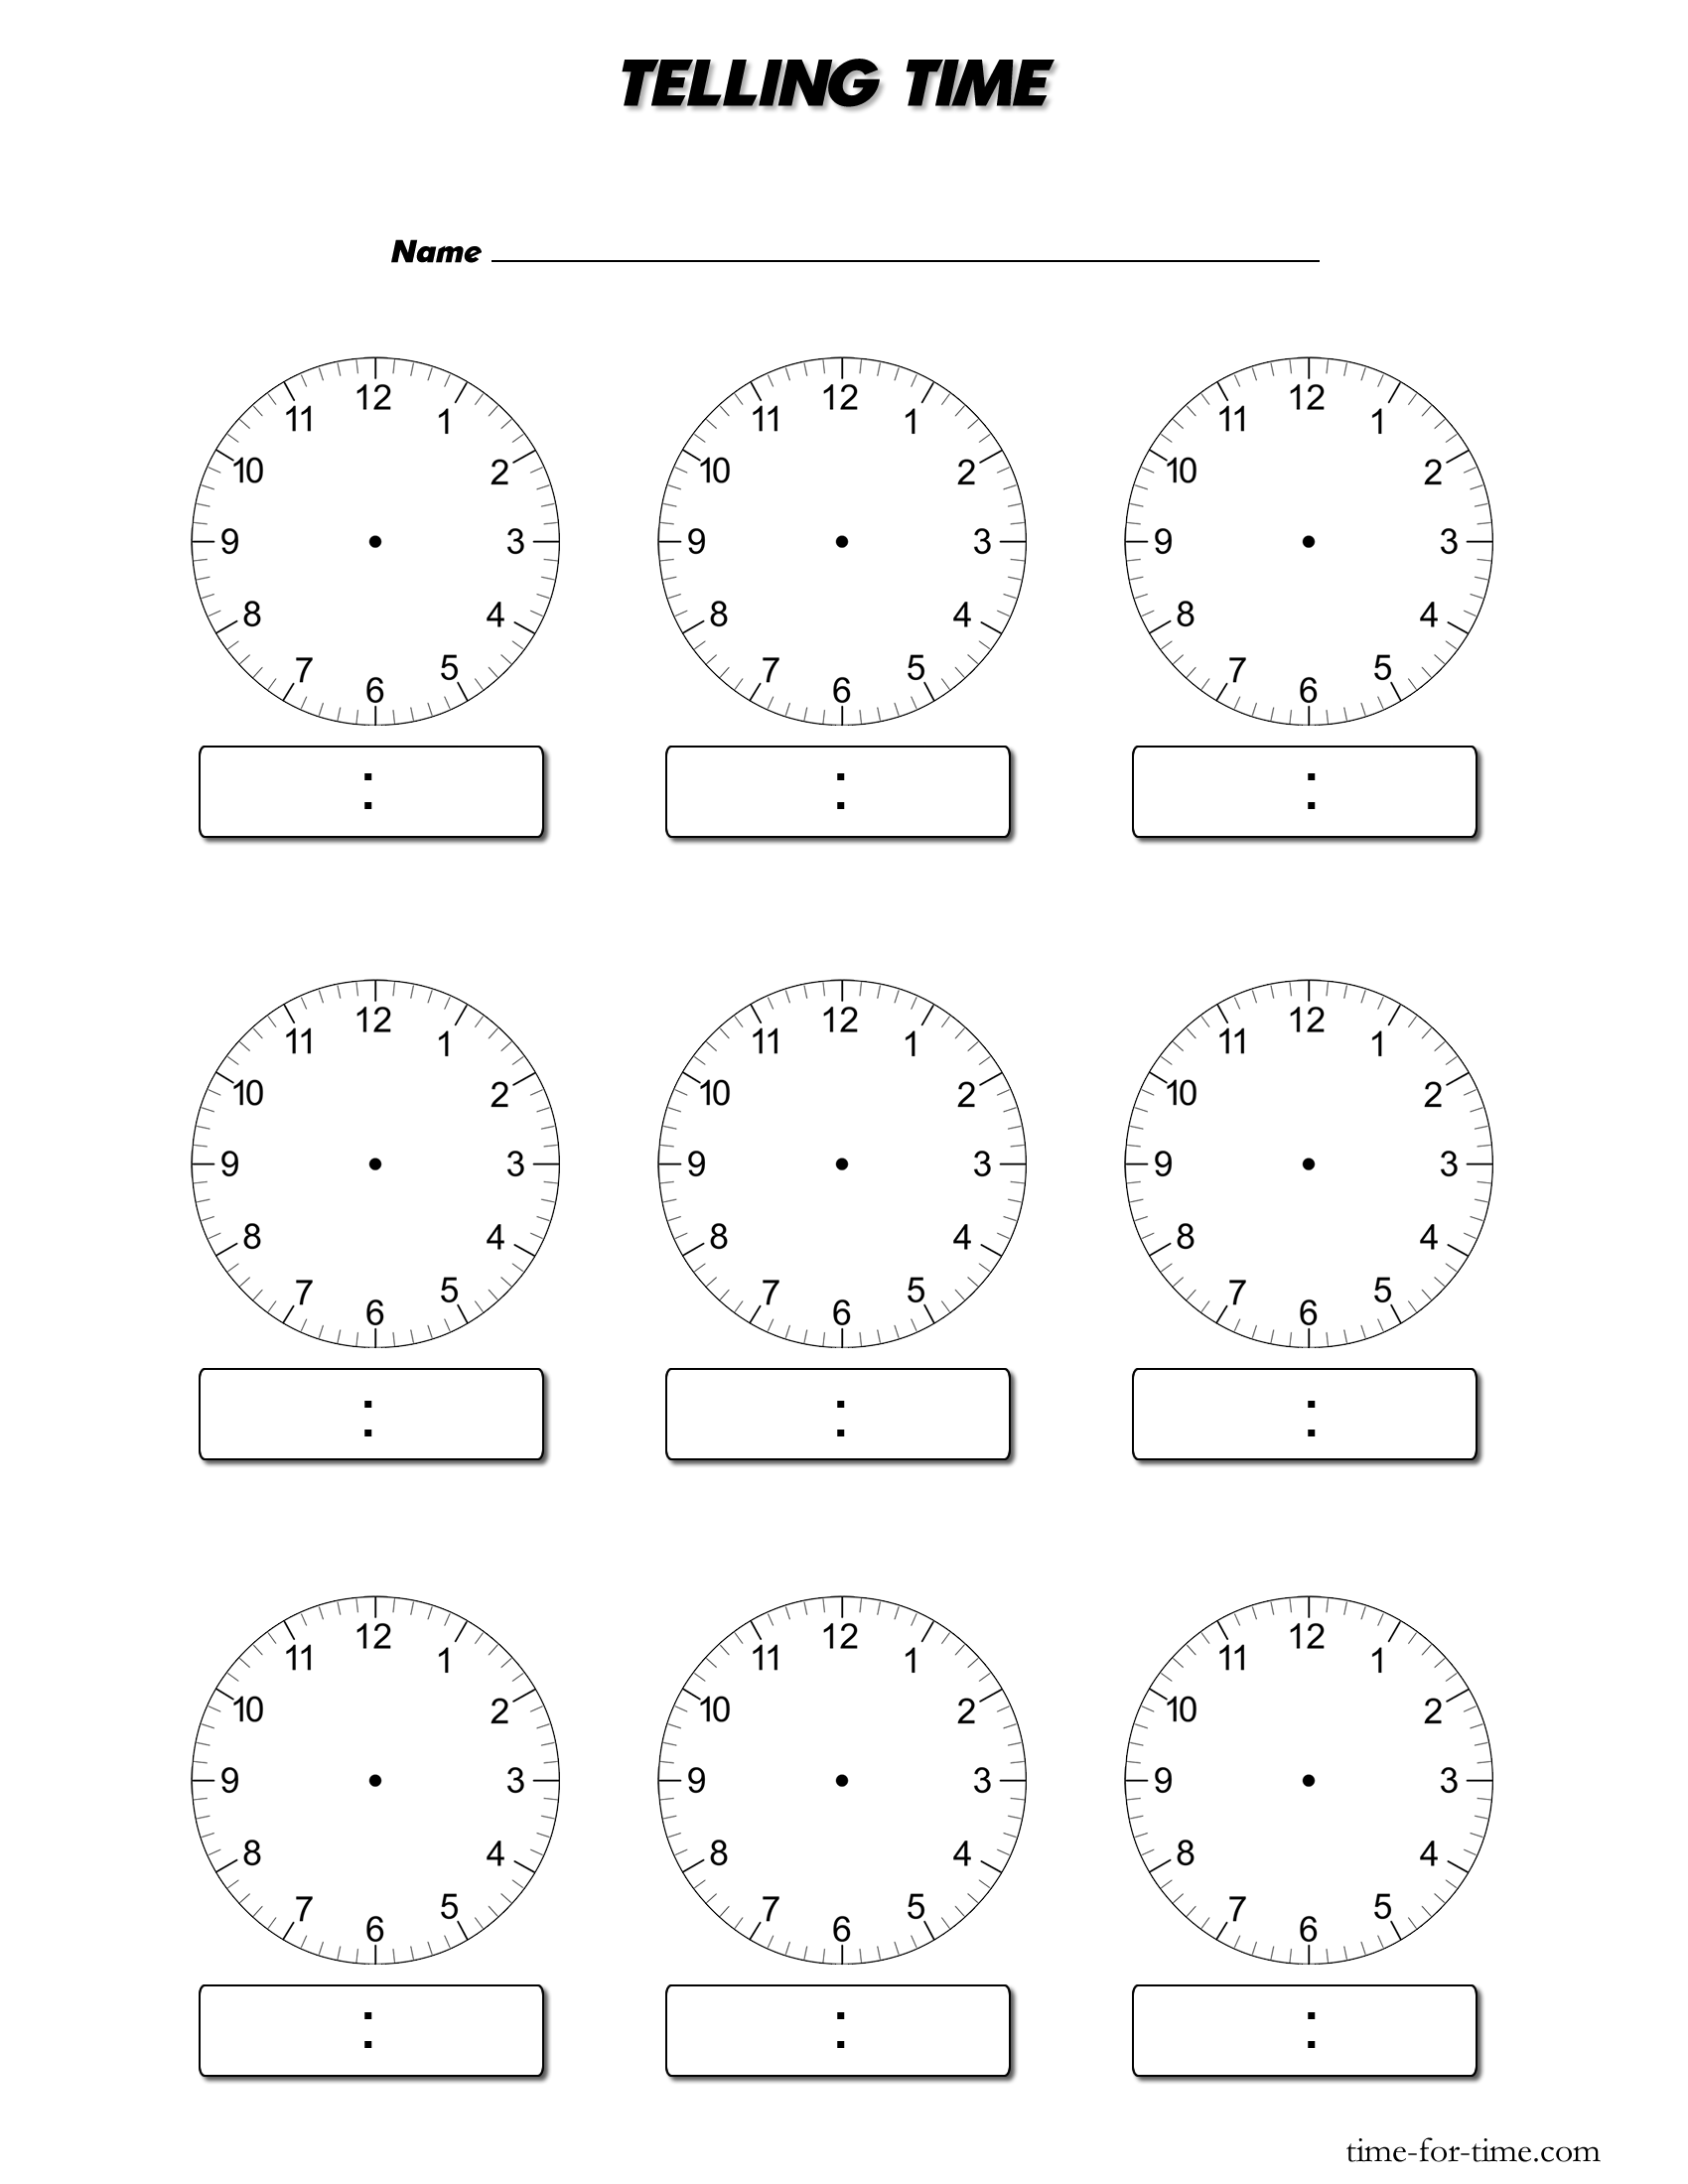 Clock faces for use in learning to tell the time.